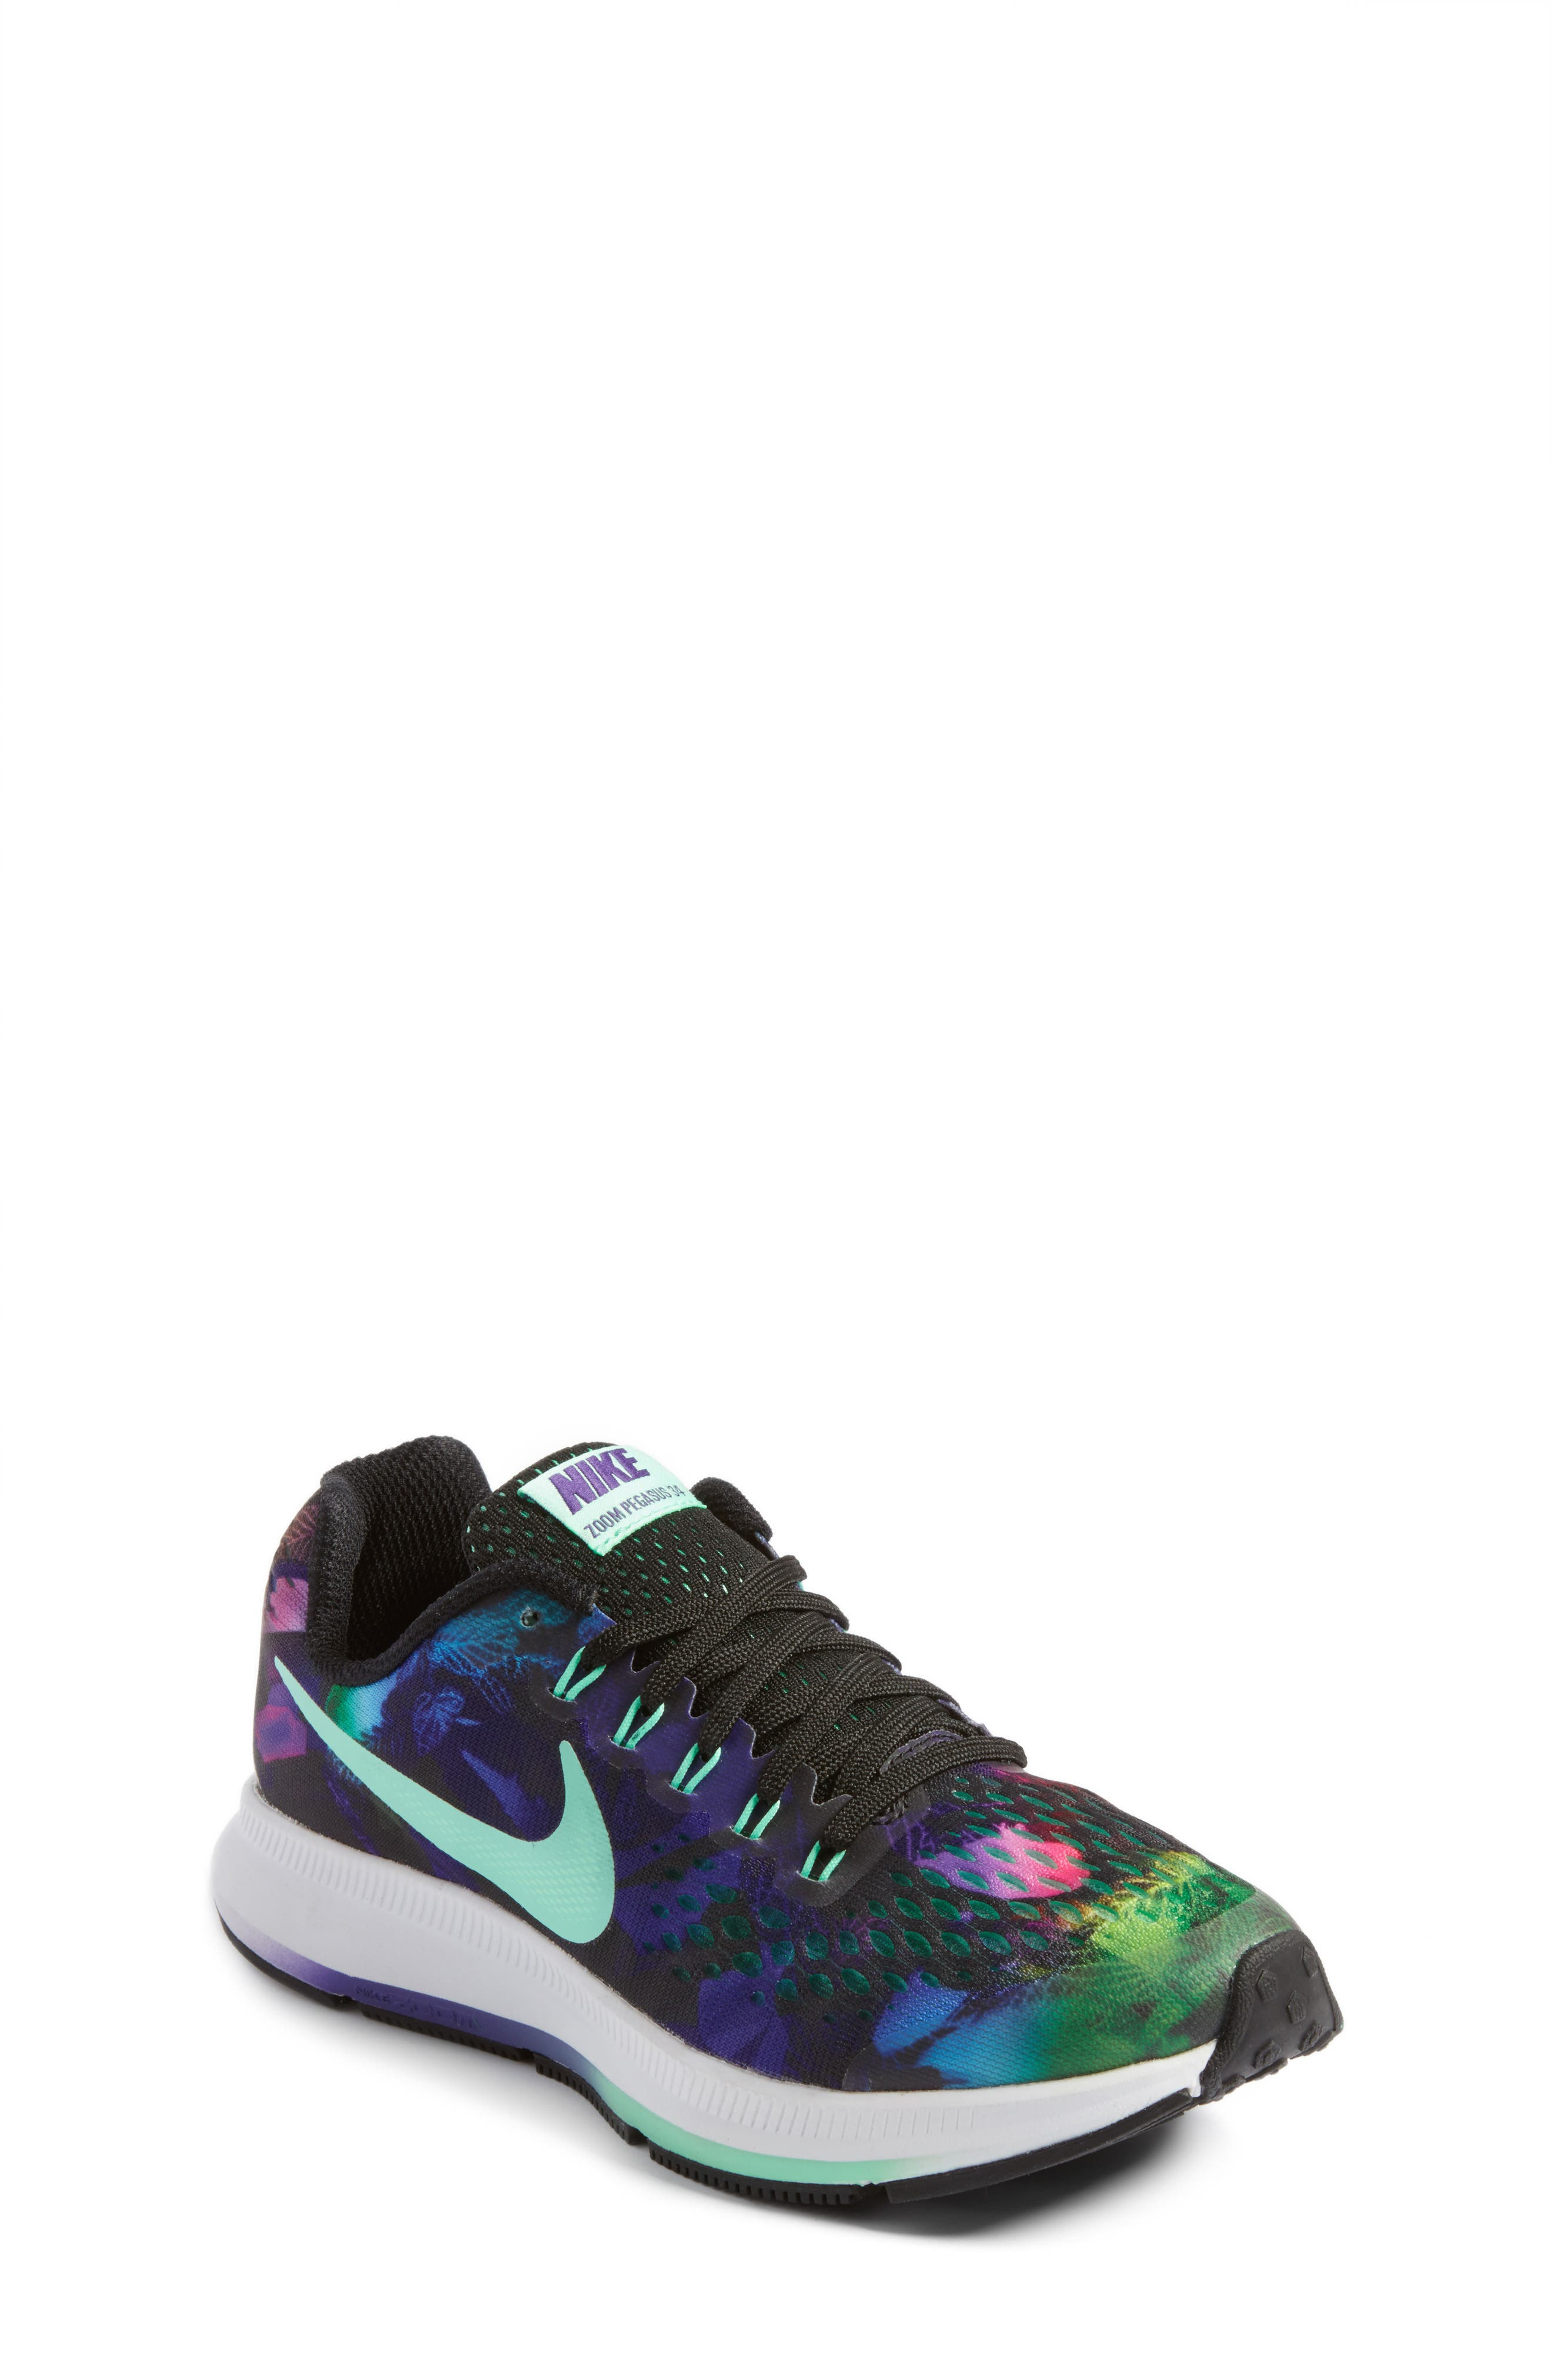 Zoom Pegasus 34 Print Sneaker,                         Main,                         color, 001